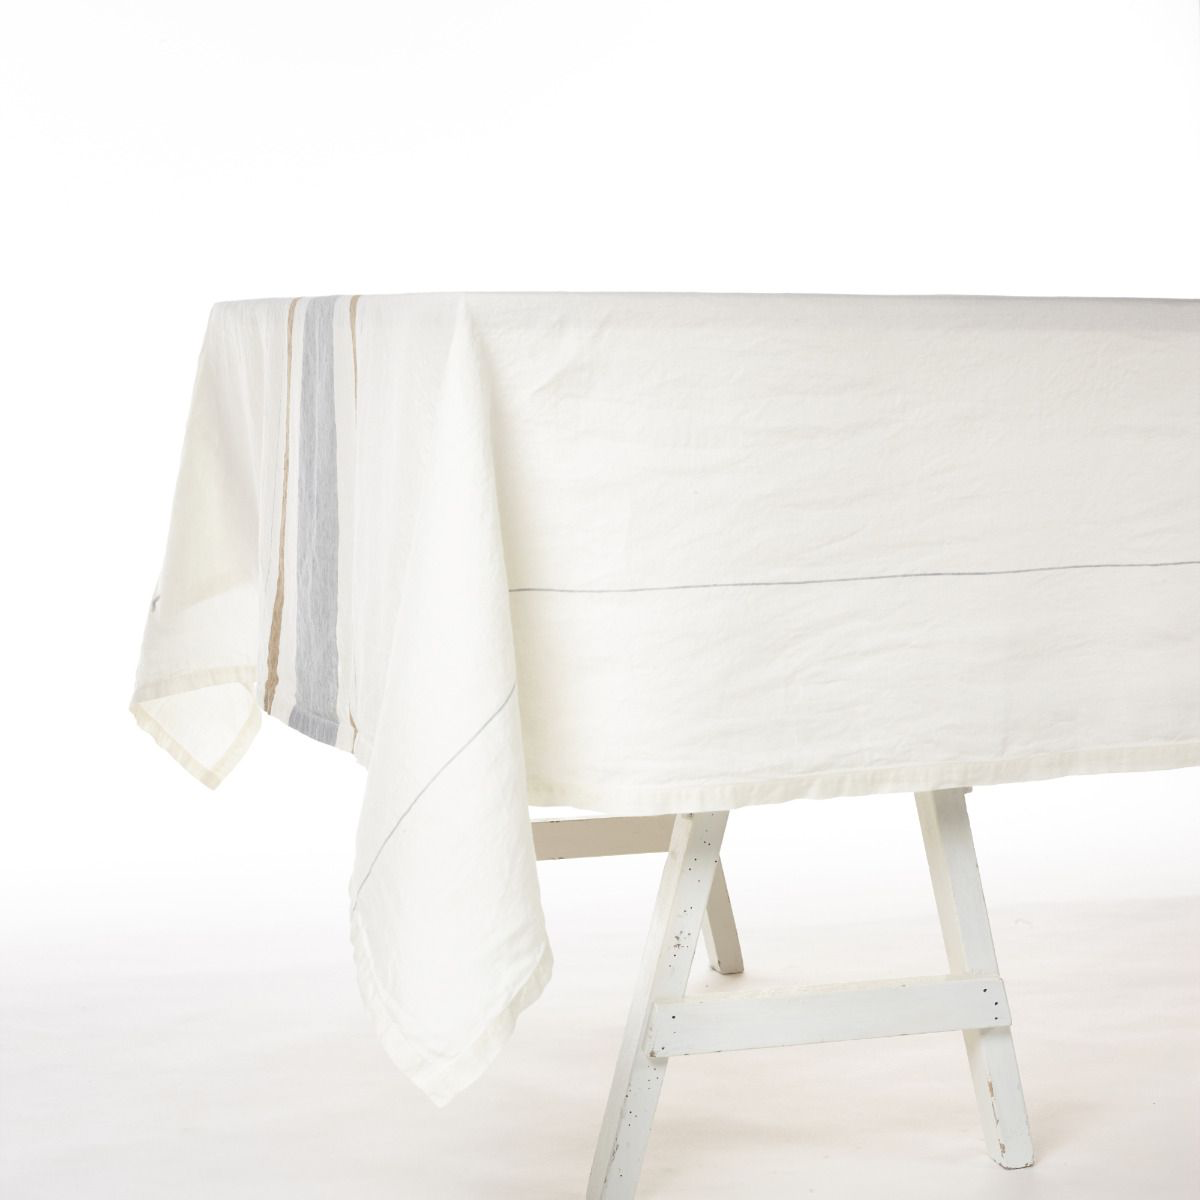 guila tablecloth, libeco, table linen, - adorn.house